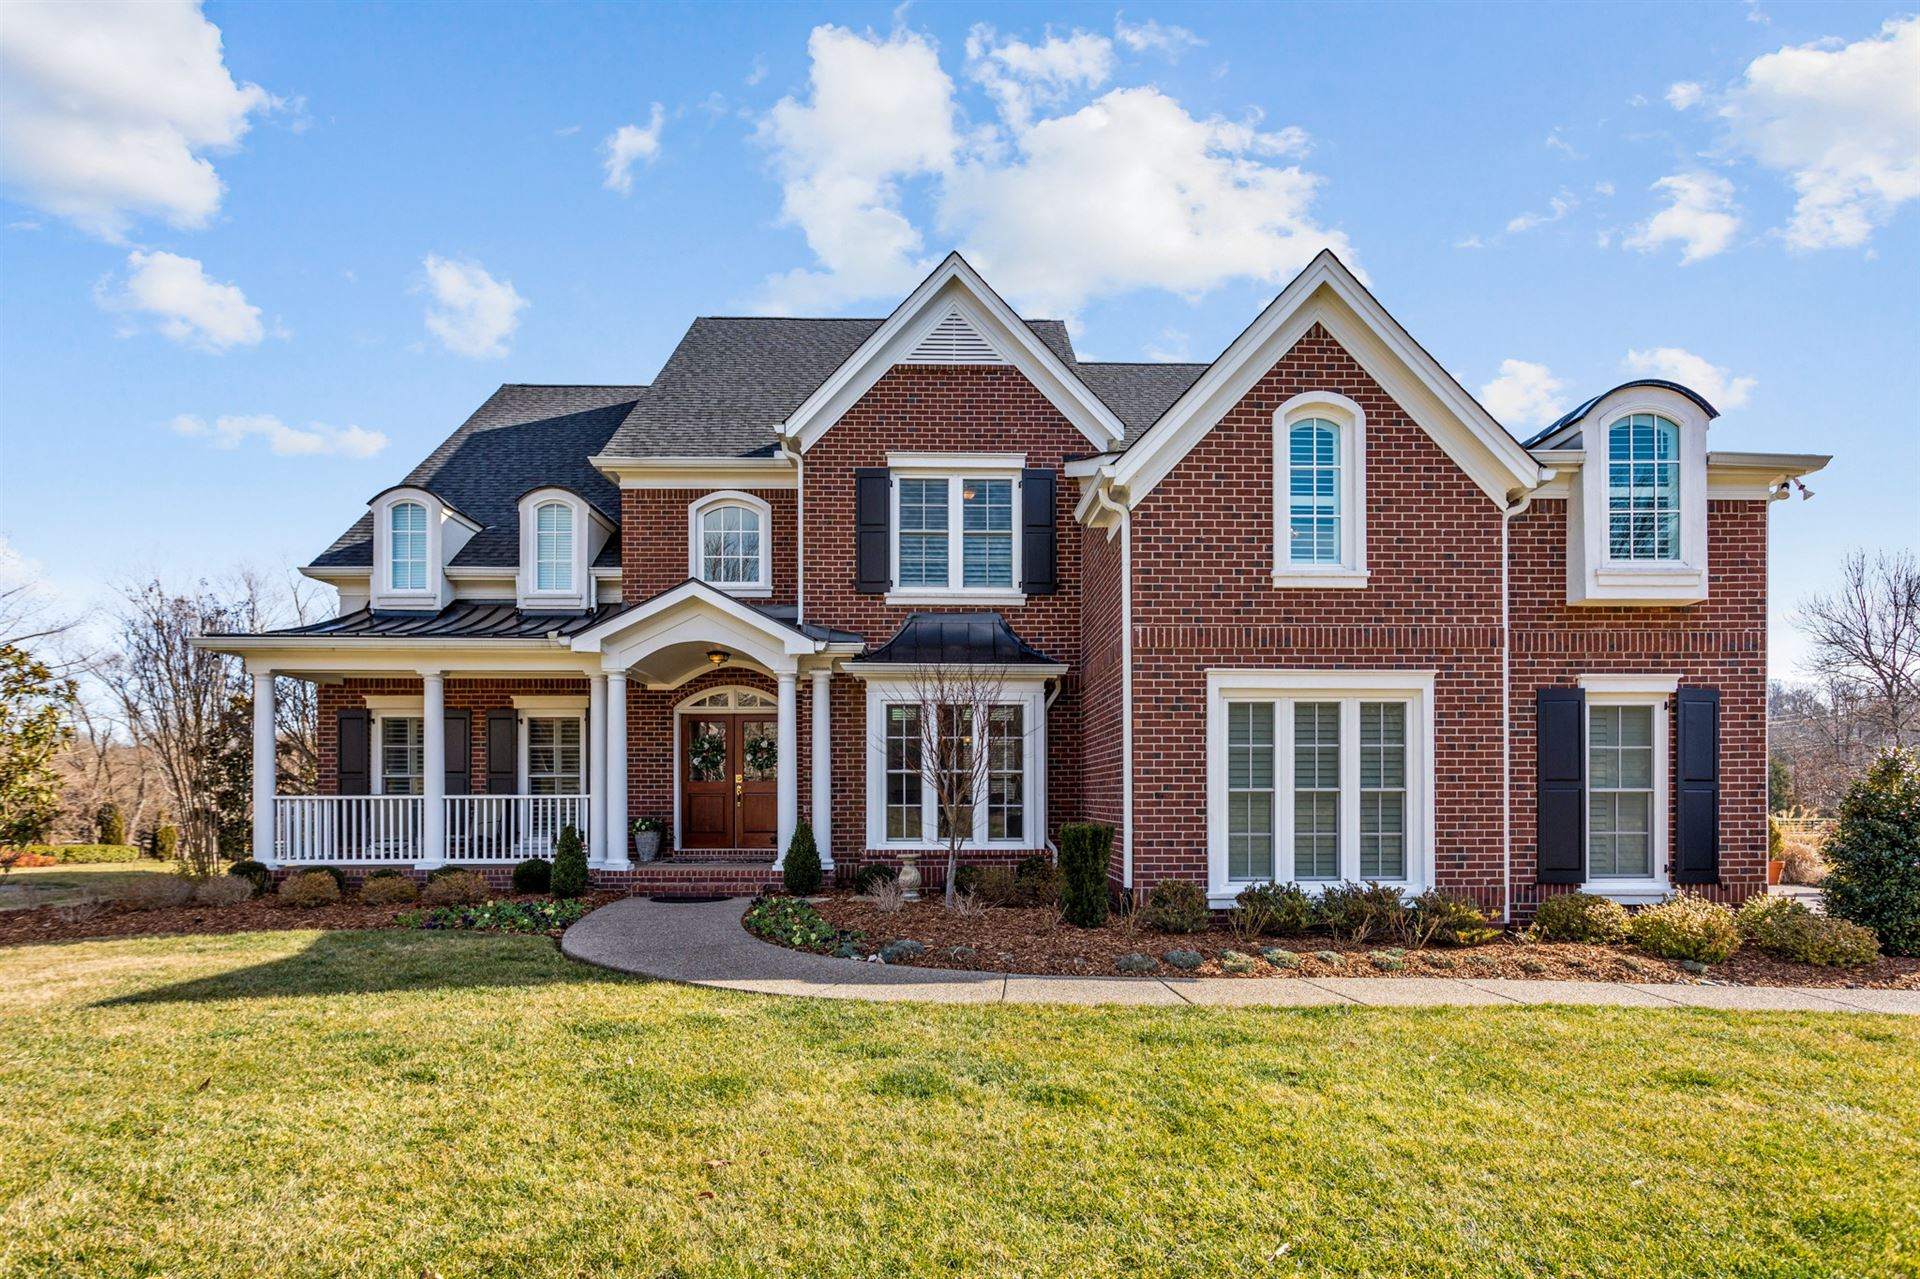 147 Governors Way, Brentwood, TN 37027 - MLS#: 2222618